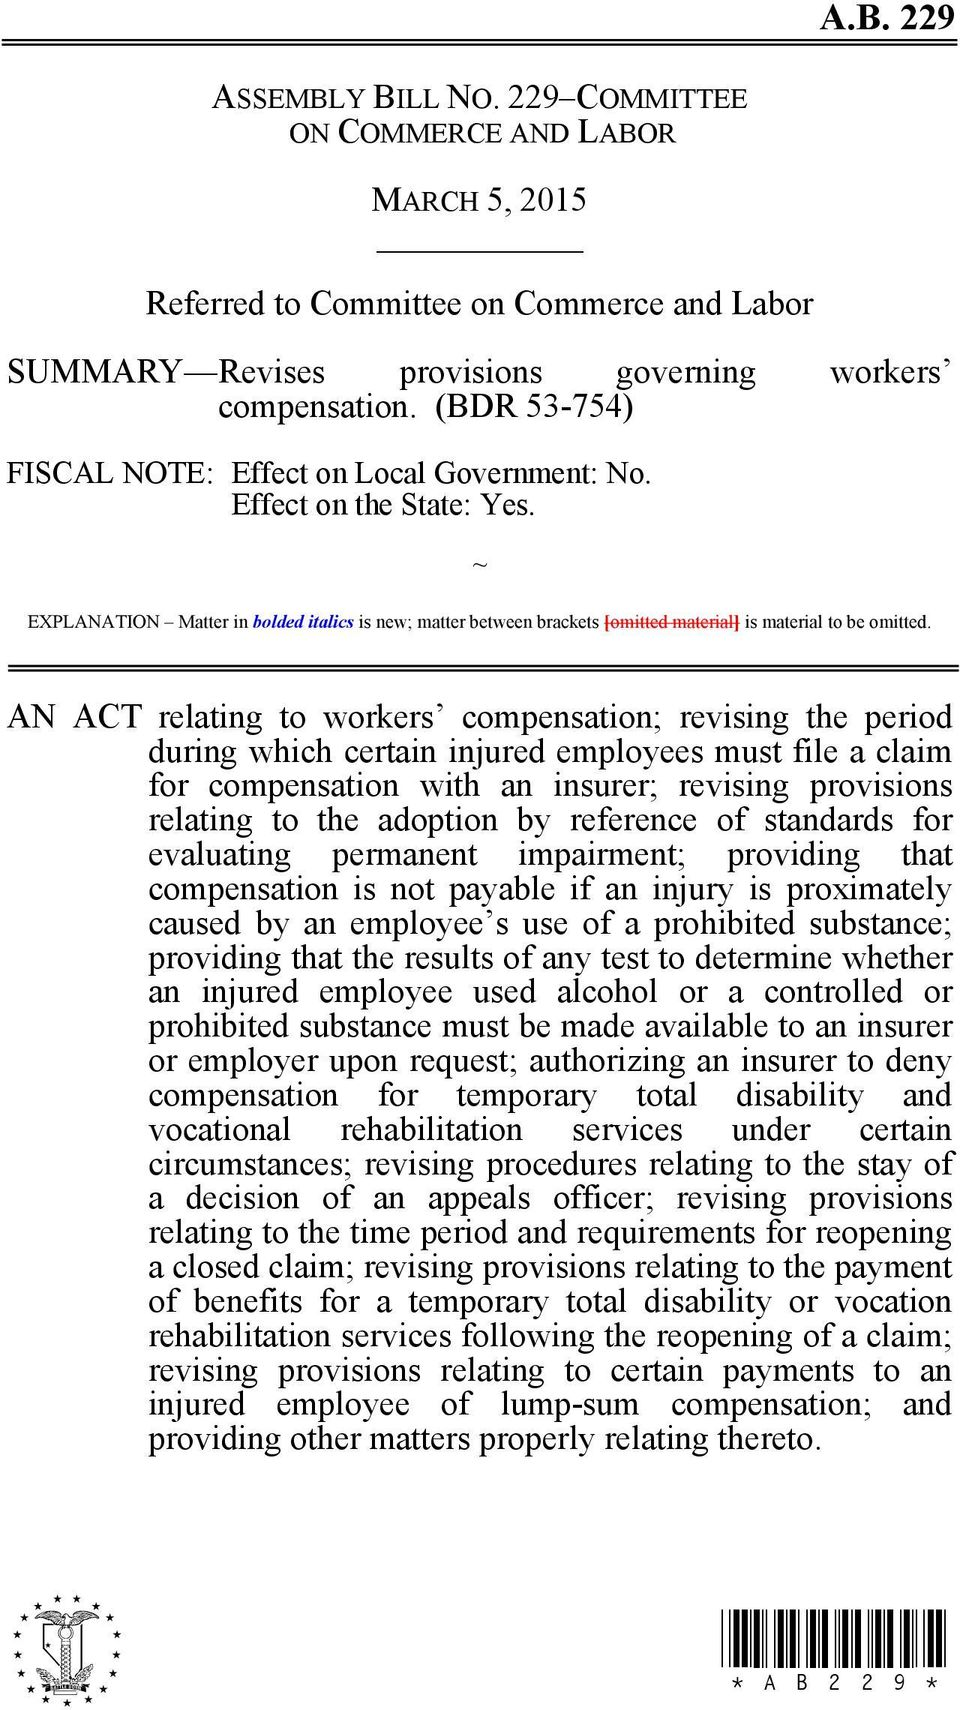 AN ACT relating to workers compensation; revising the period during which certain injured employees must file a claim for compensation with an insurer; revising provisions relating to the adoption by